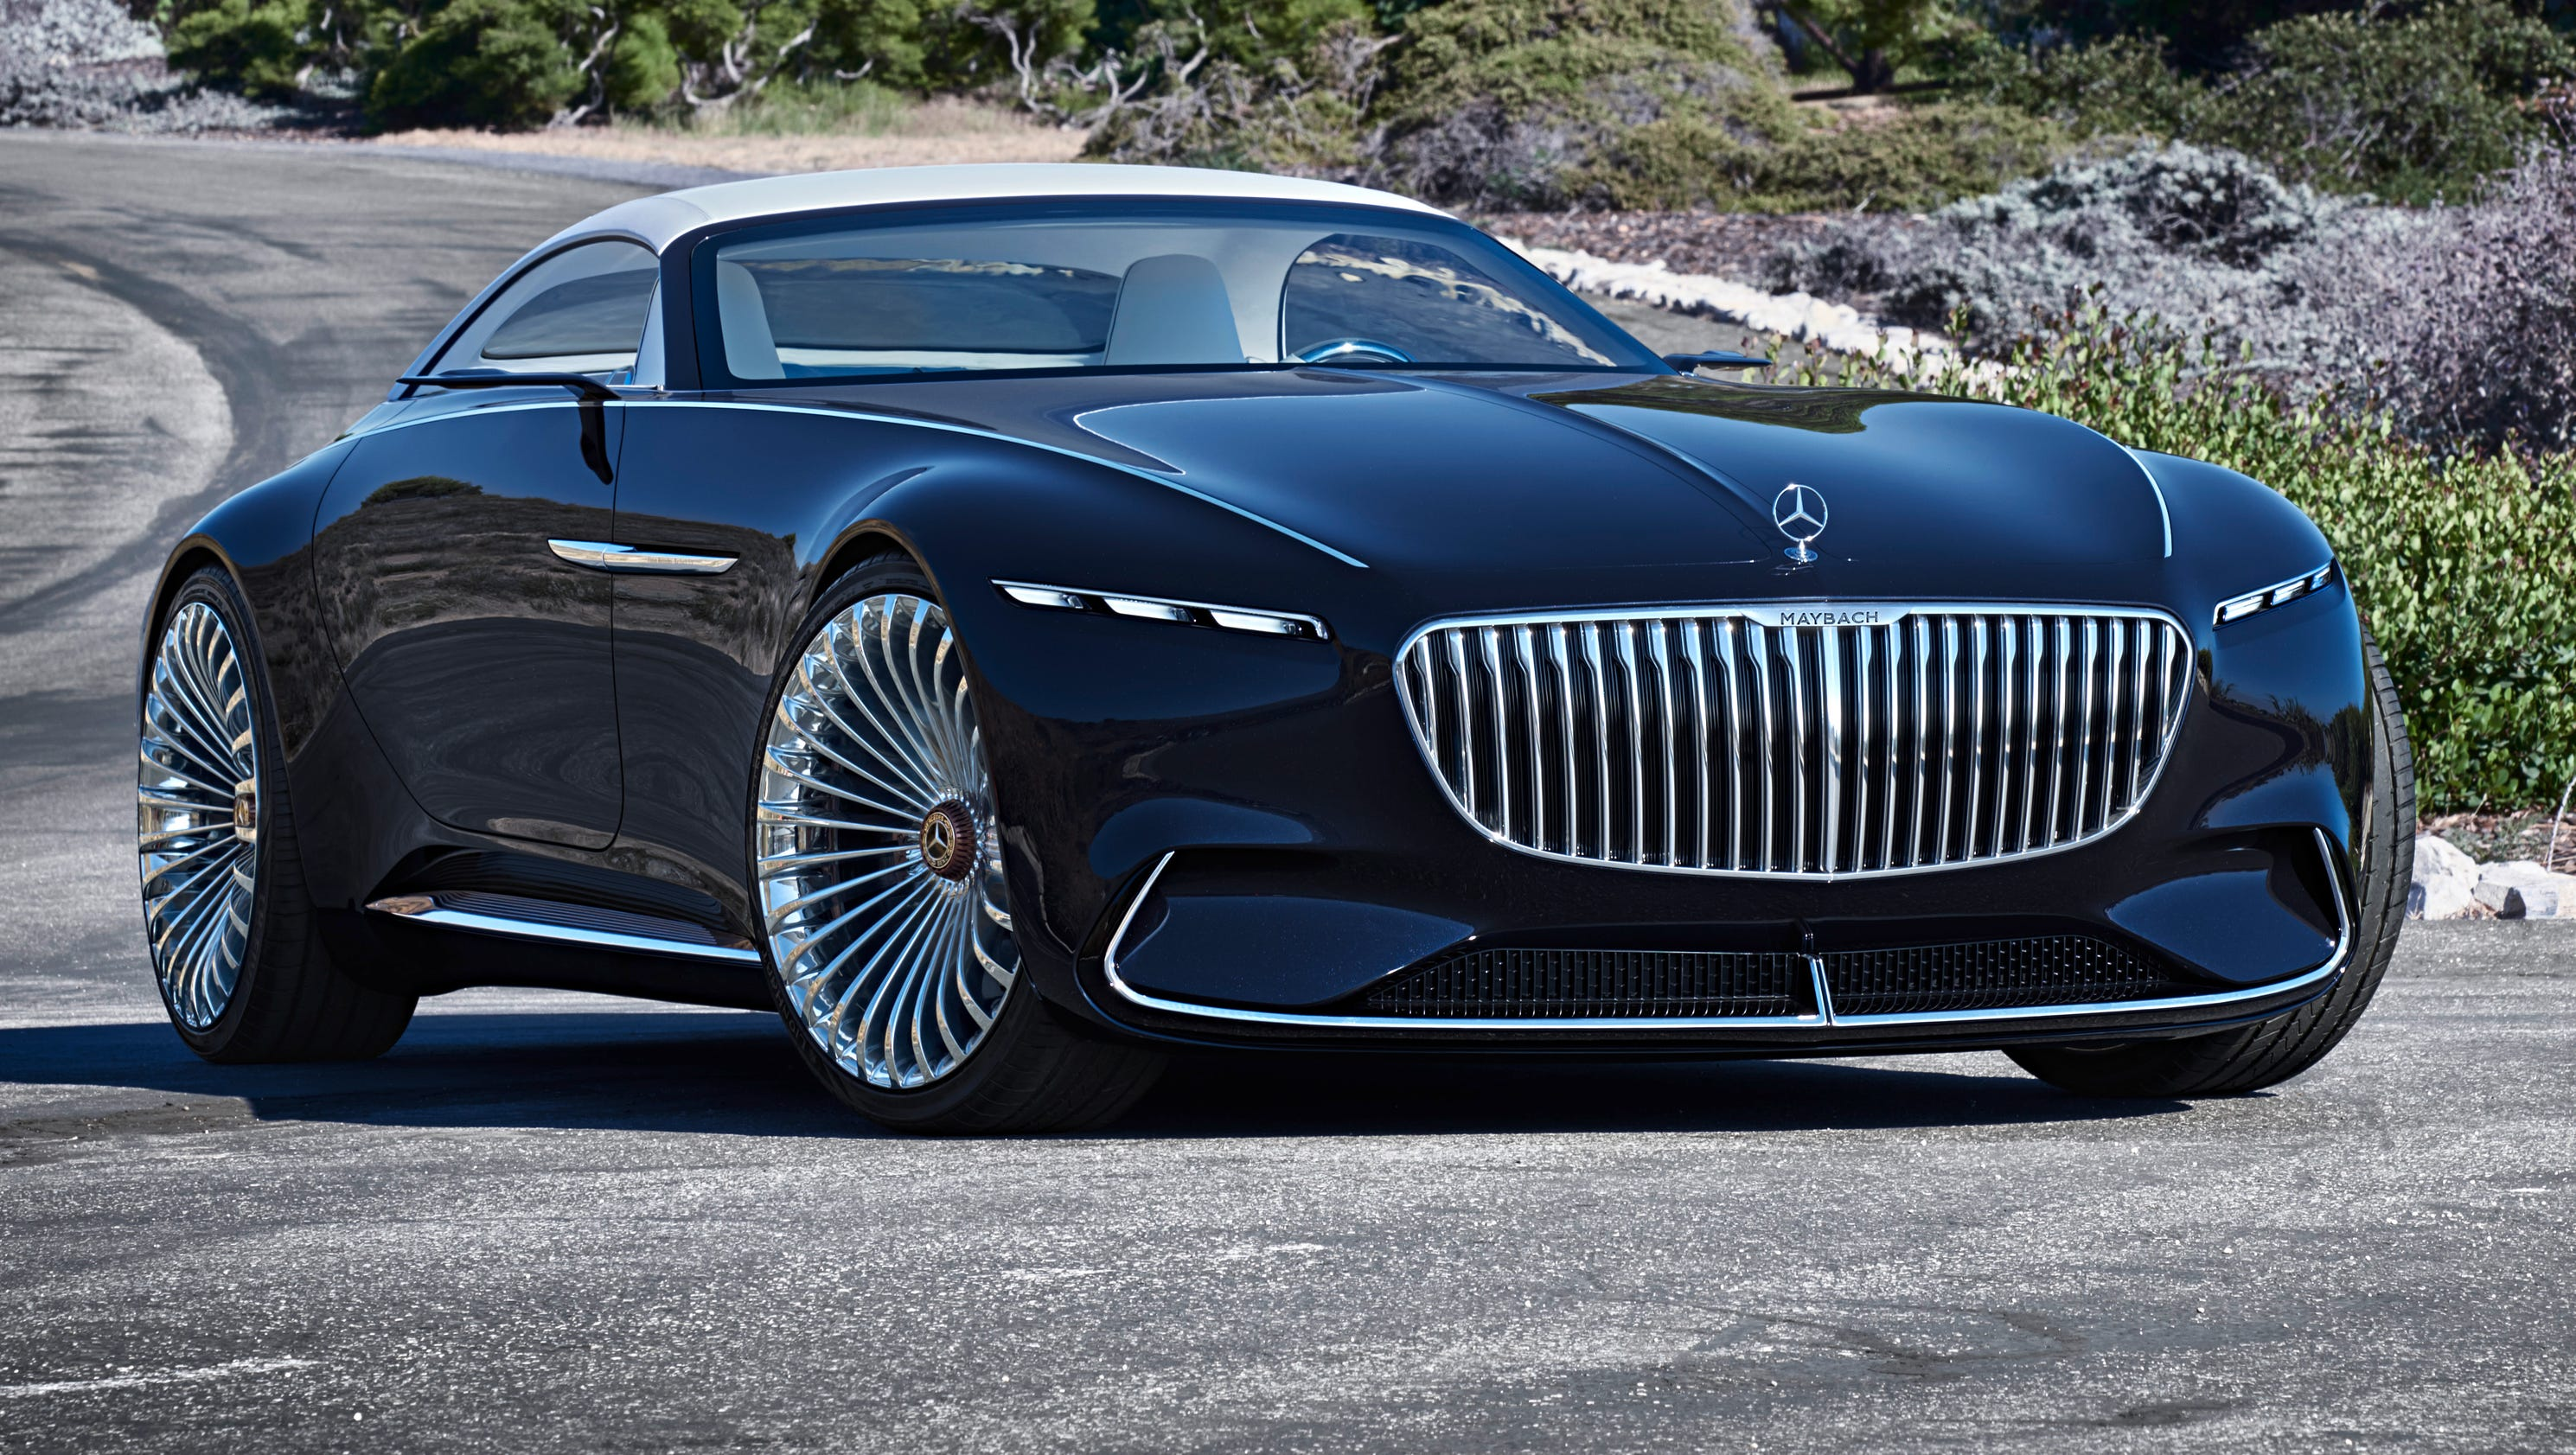 Mercedes benz shows off its mercedes maybach 6 cabriolet for Mercedes benz maybach cabriolet